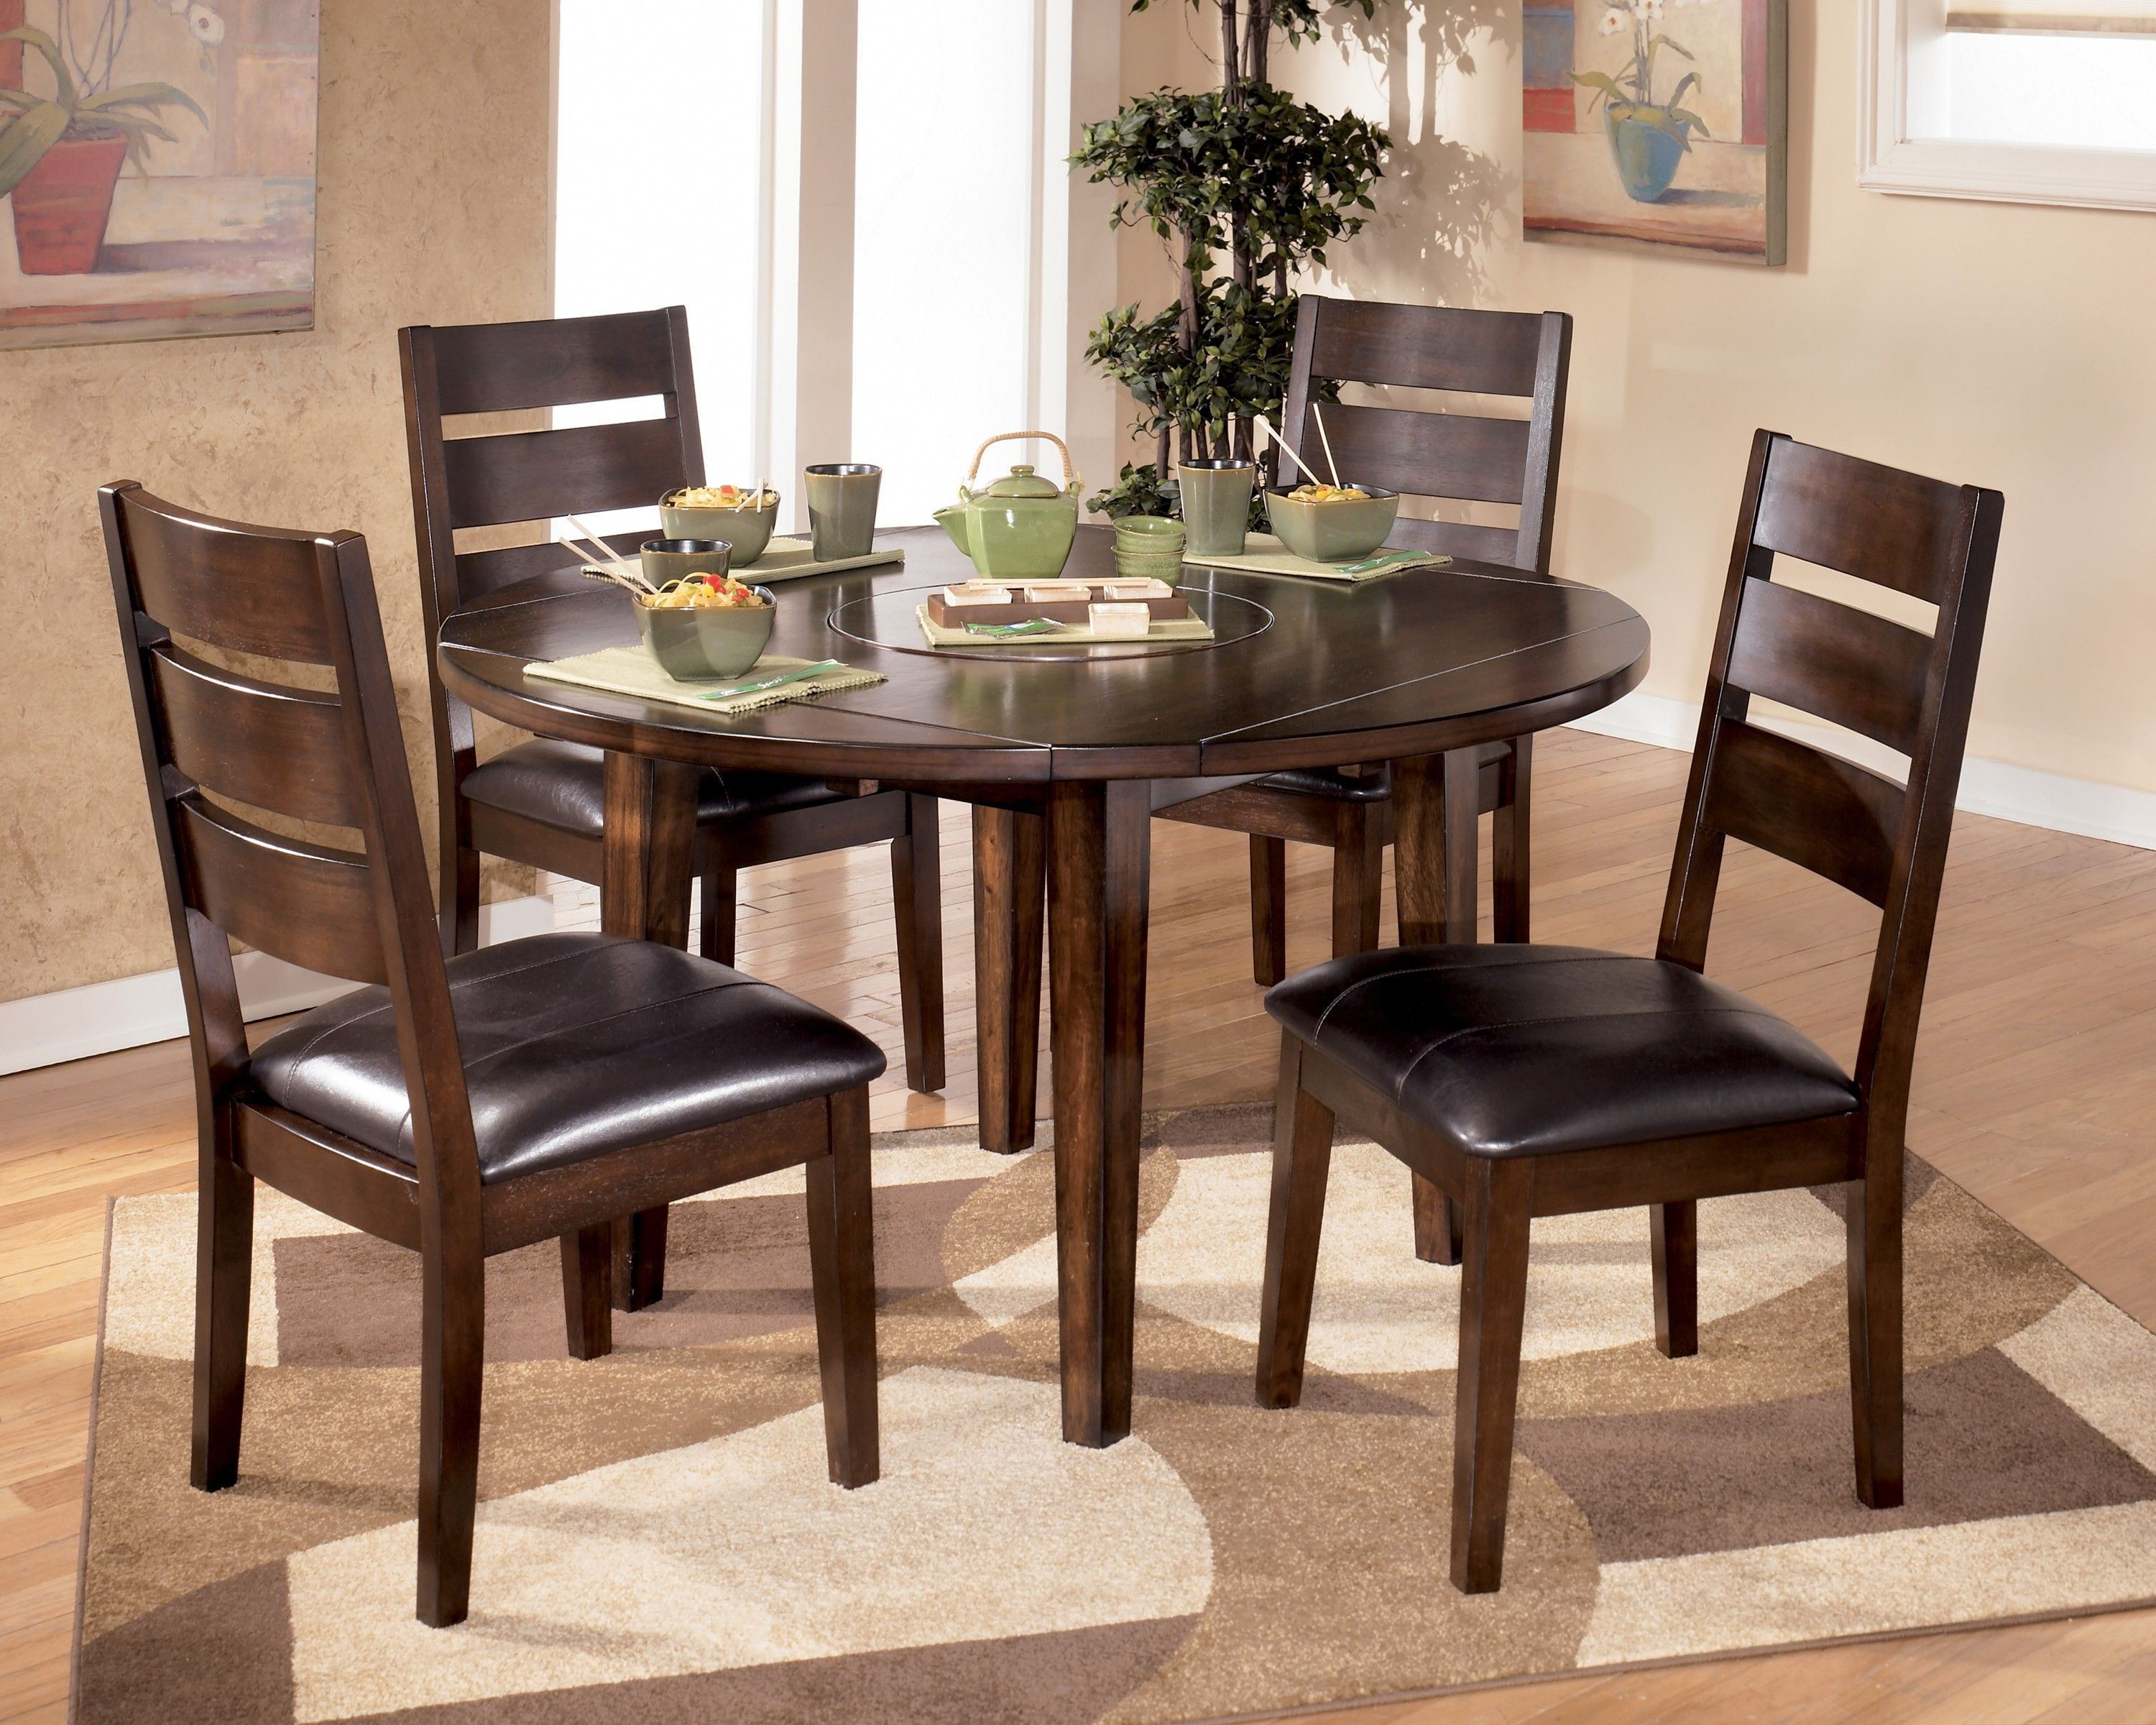 Cool Round Dining Room Table Sets Hd Meja Makan Bulat